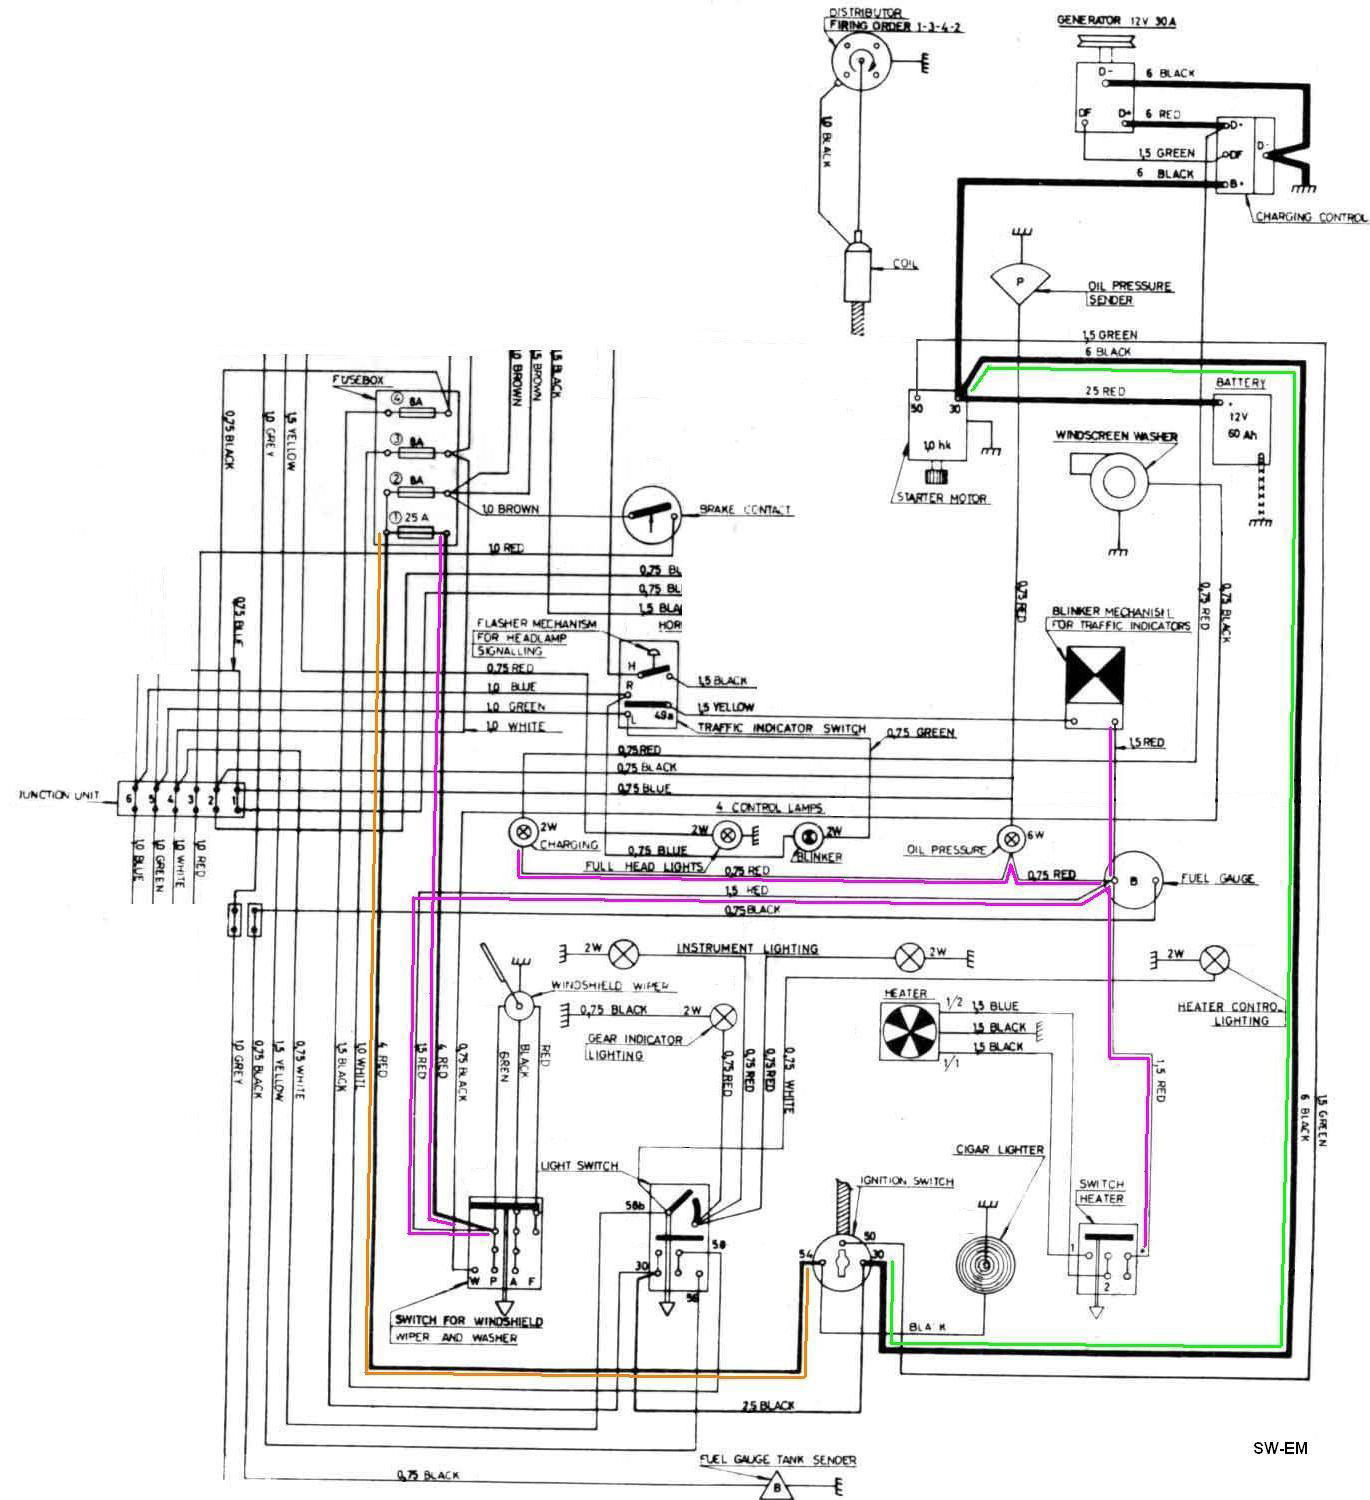 IGN SW wiring diag 122 markup 1800 ignition wiring swedish vs british design volvo penta industrial engine wiring diagram at gsmportal.co